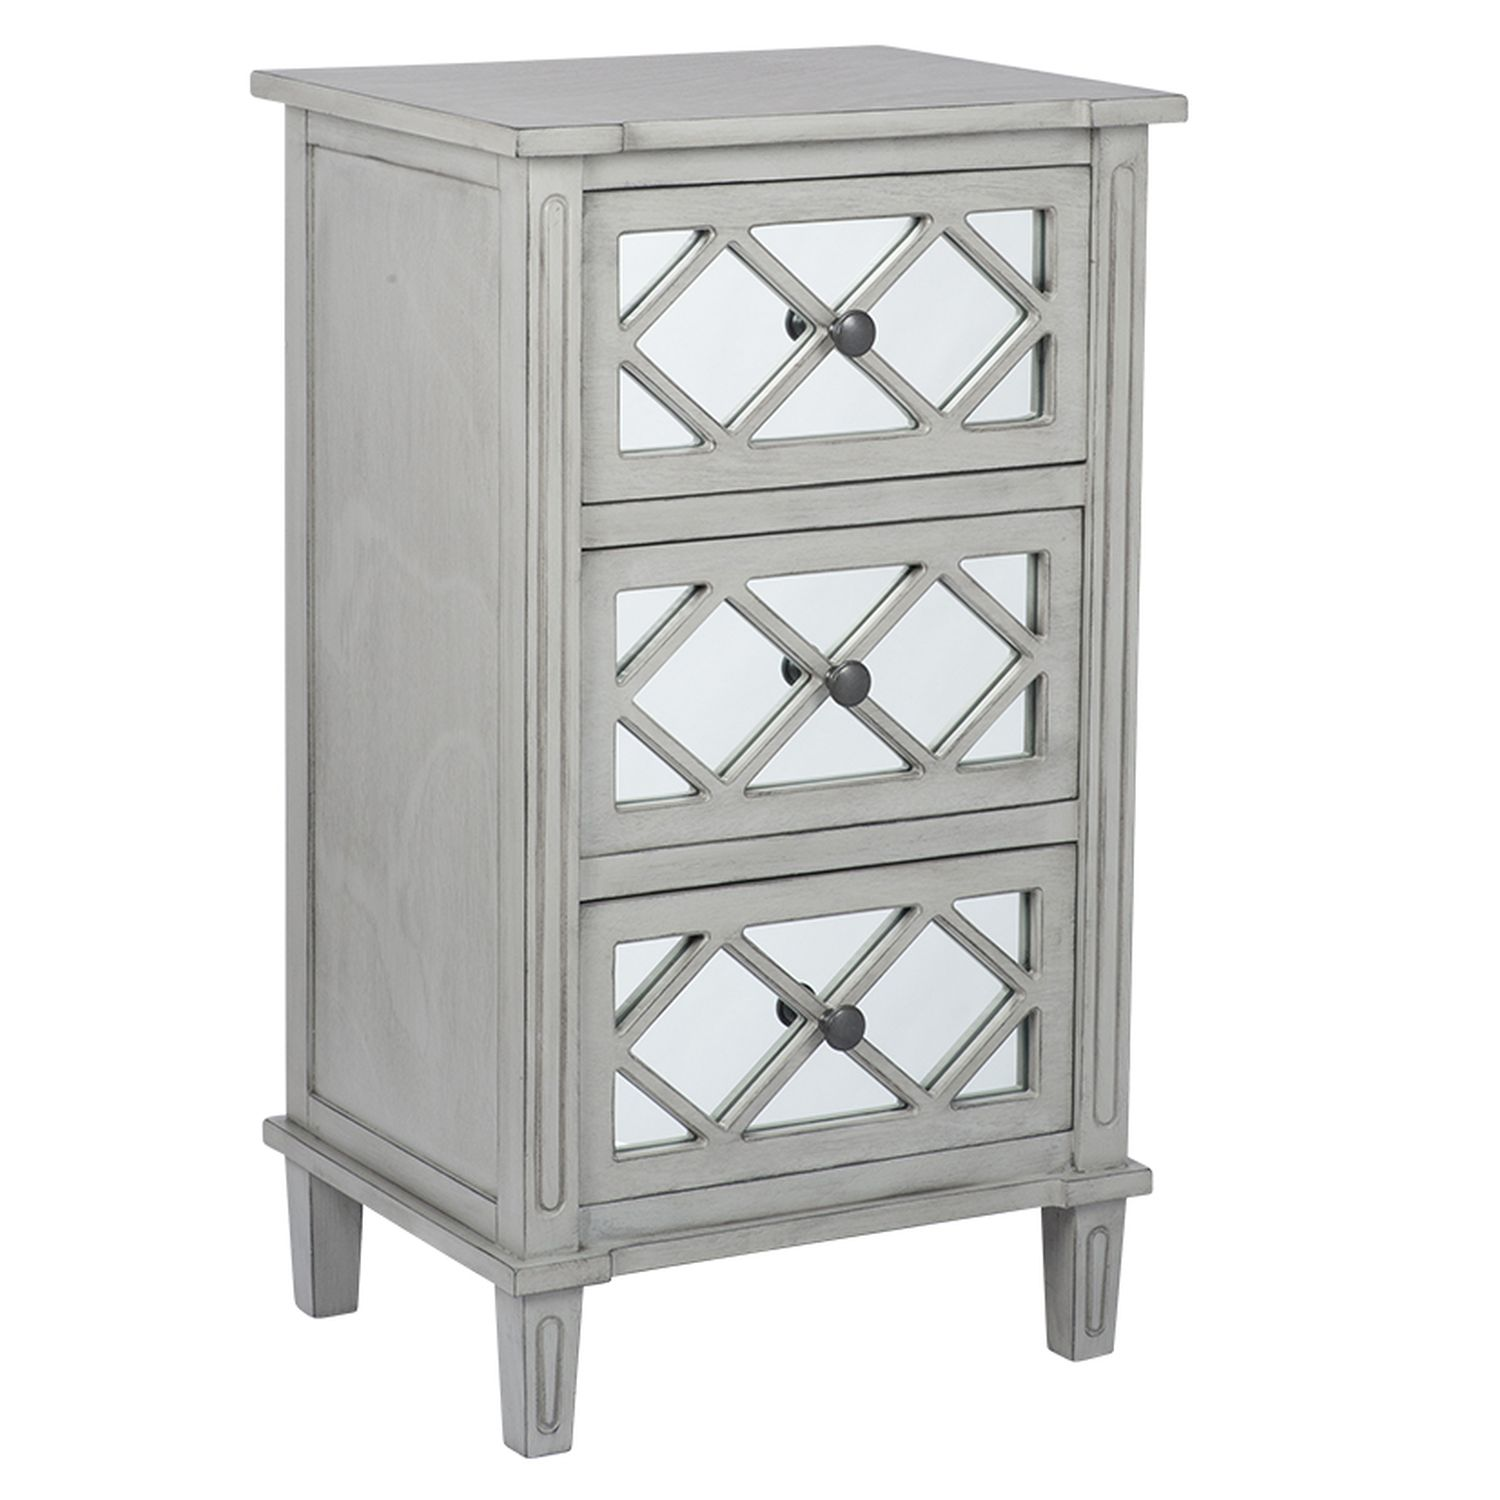 Image of Casa Puglia 3 Drawer Chest